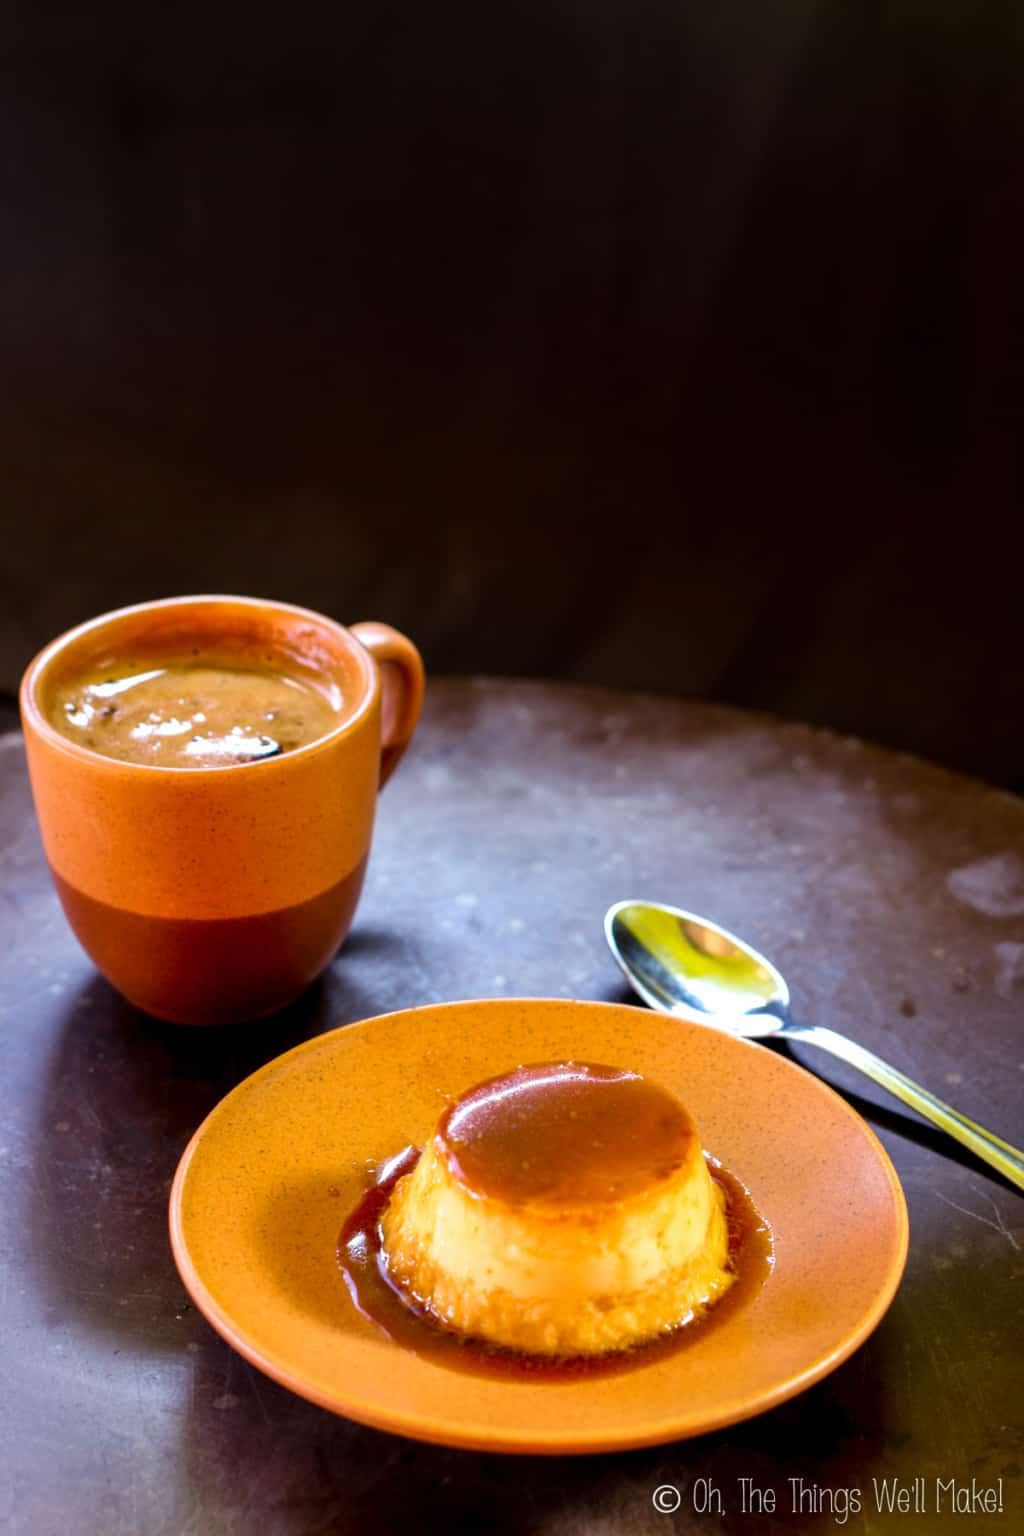 Homemade coconut flan on an orange plate with a silver spoon beside it and a cup of coffee on the other side.